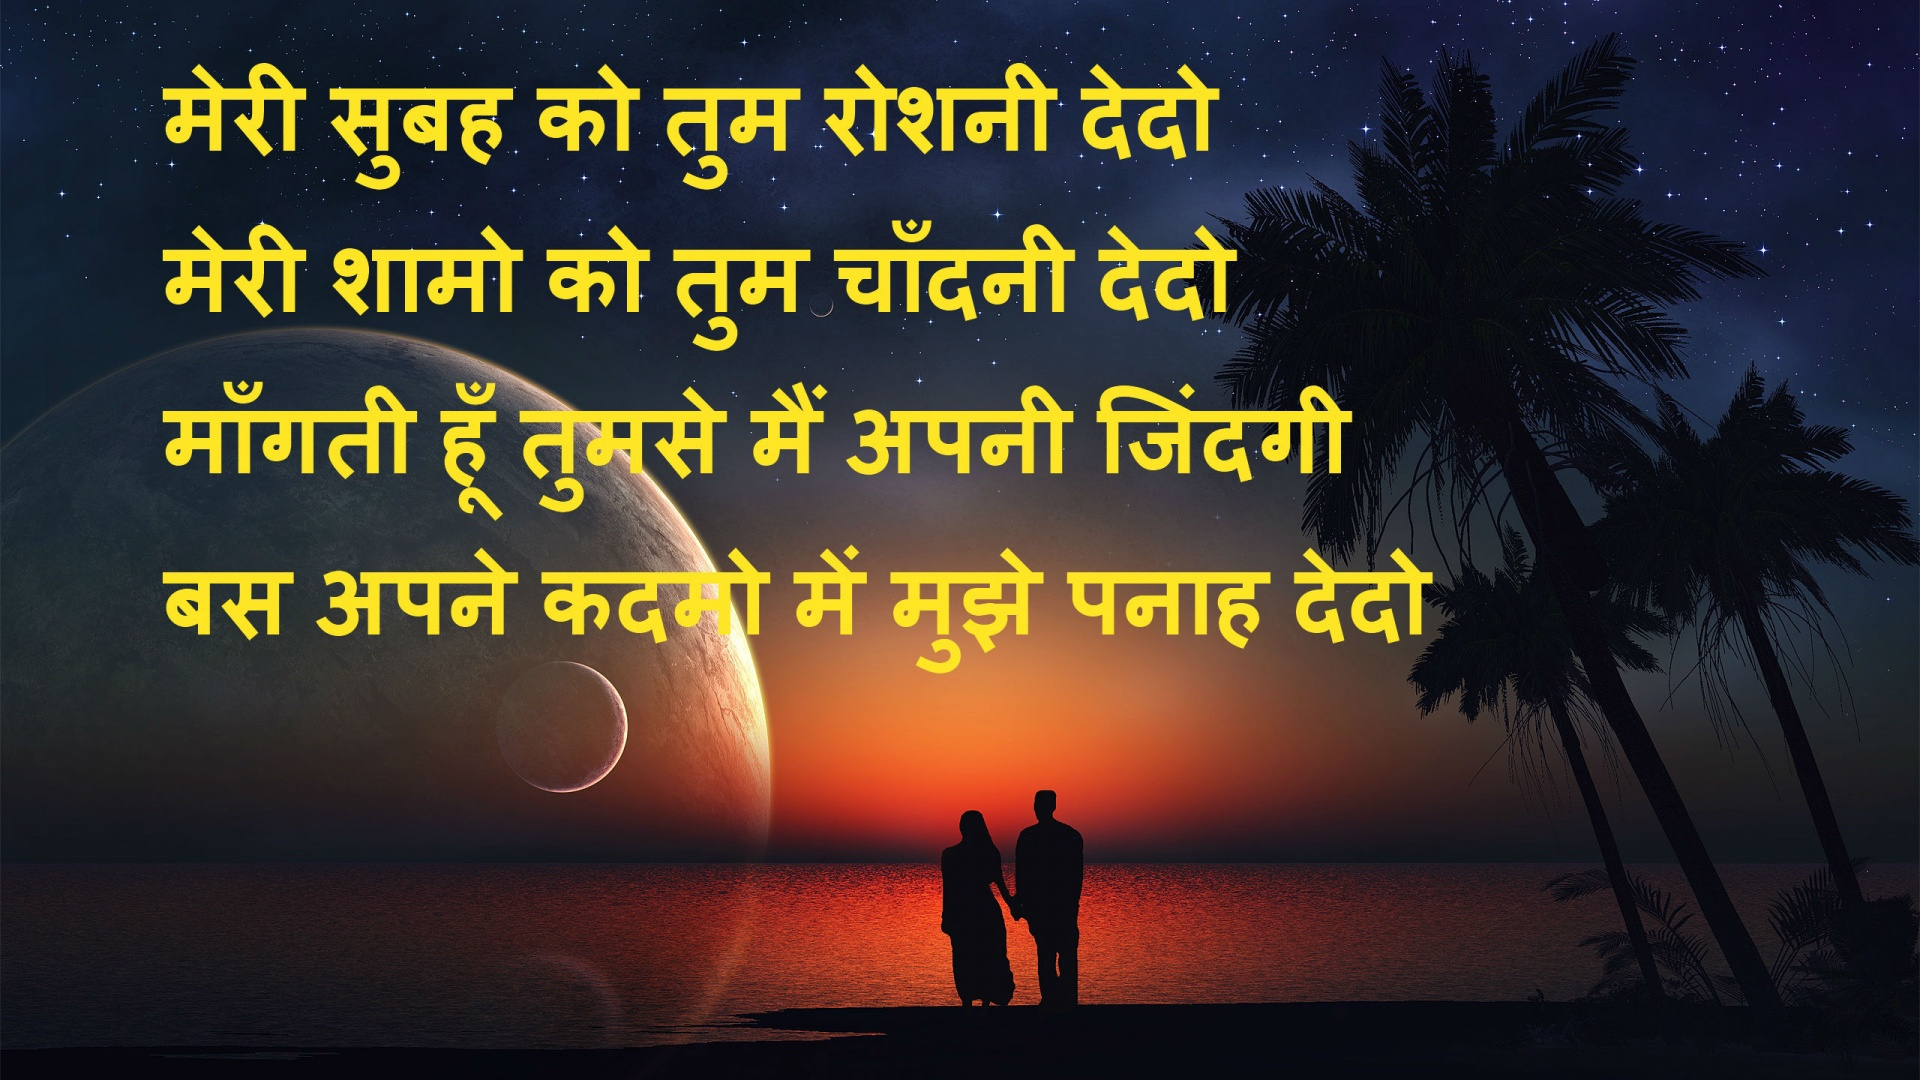 Wallpaper Of Hindi Shayari for love - HD Wallpapers Wallpapers Download High Resolution ...